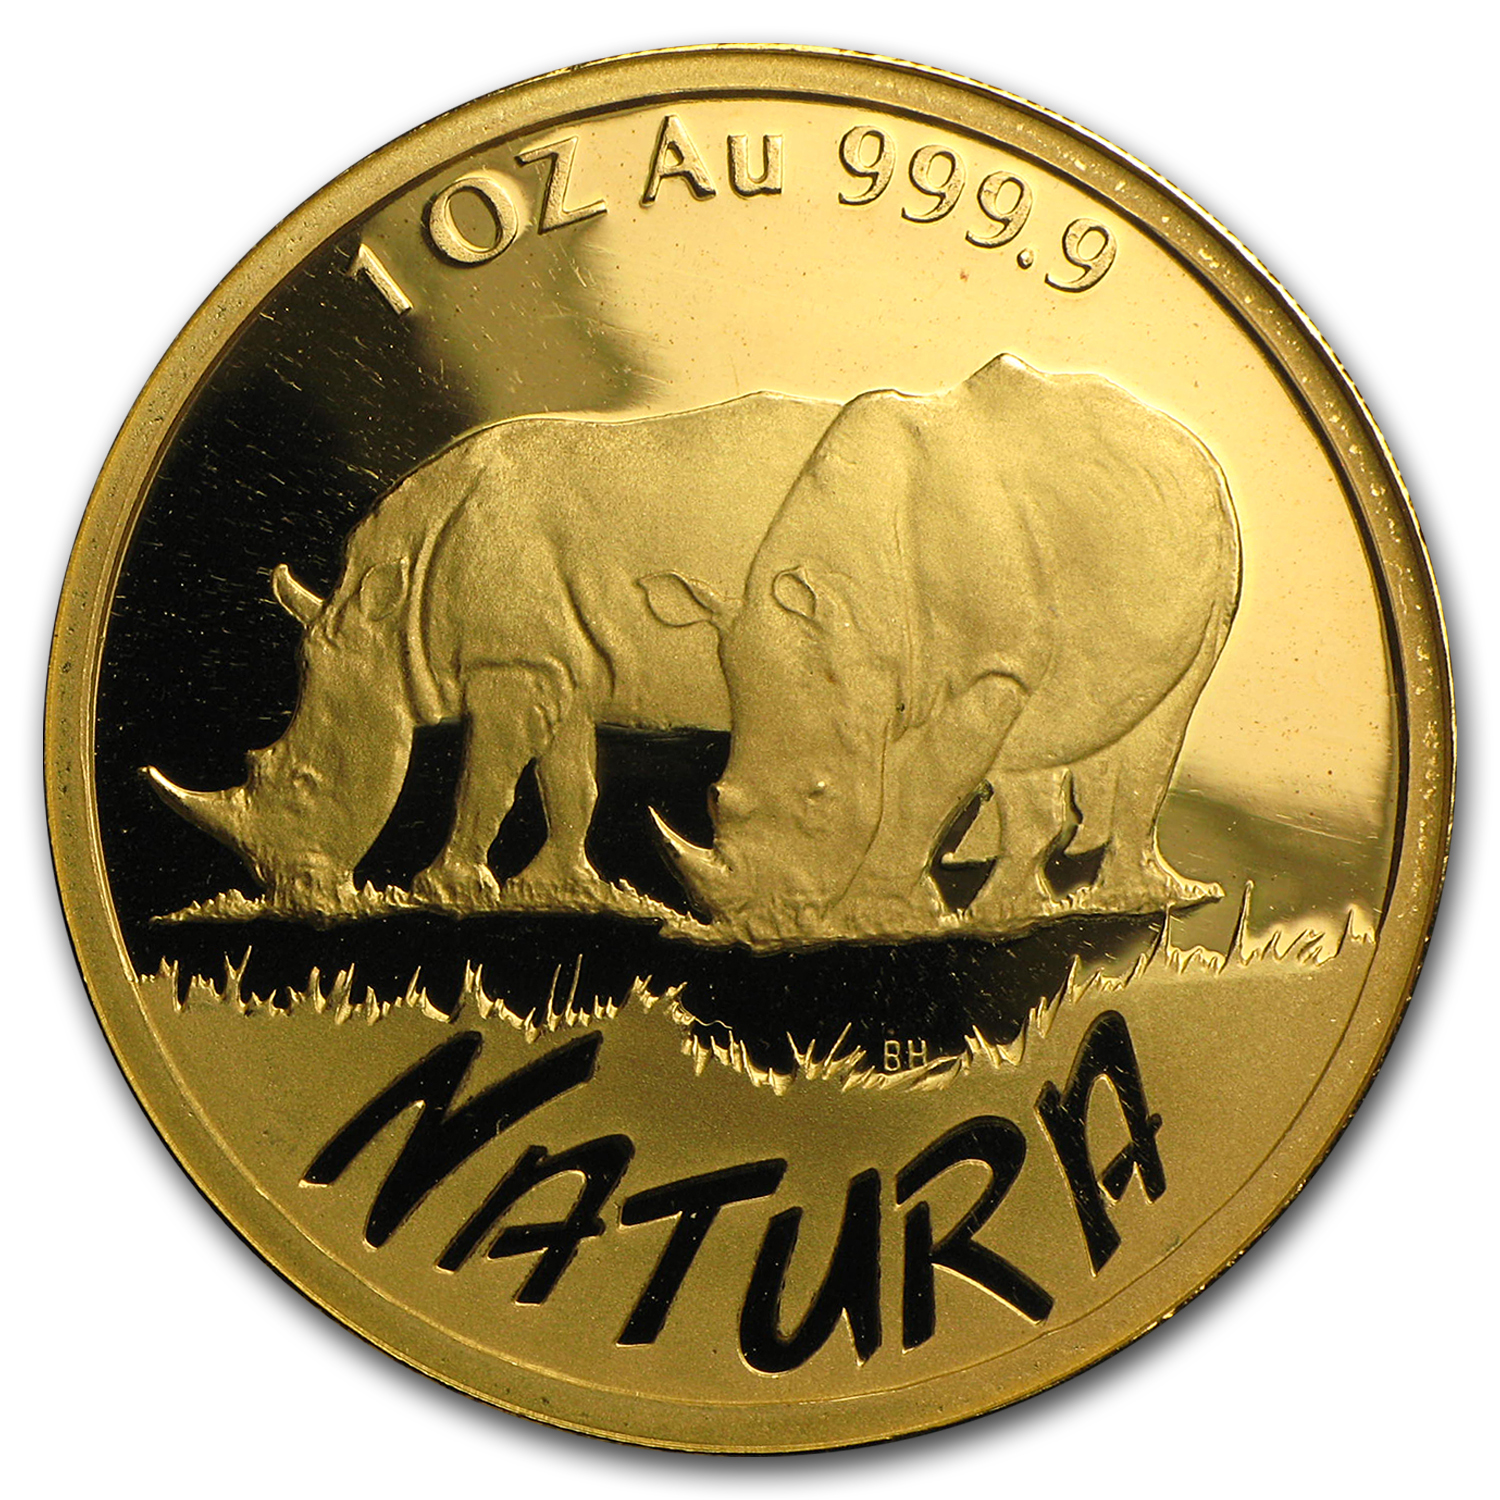 1995 South Africa 1 oz Proof Gold Natura Rhino